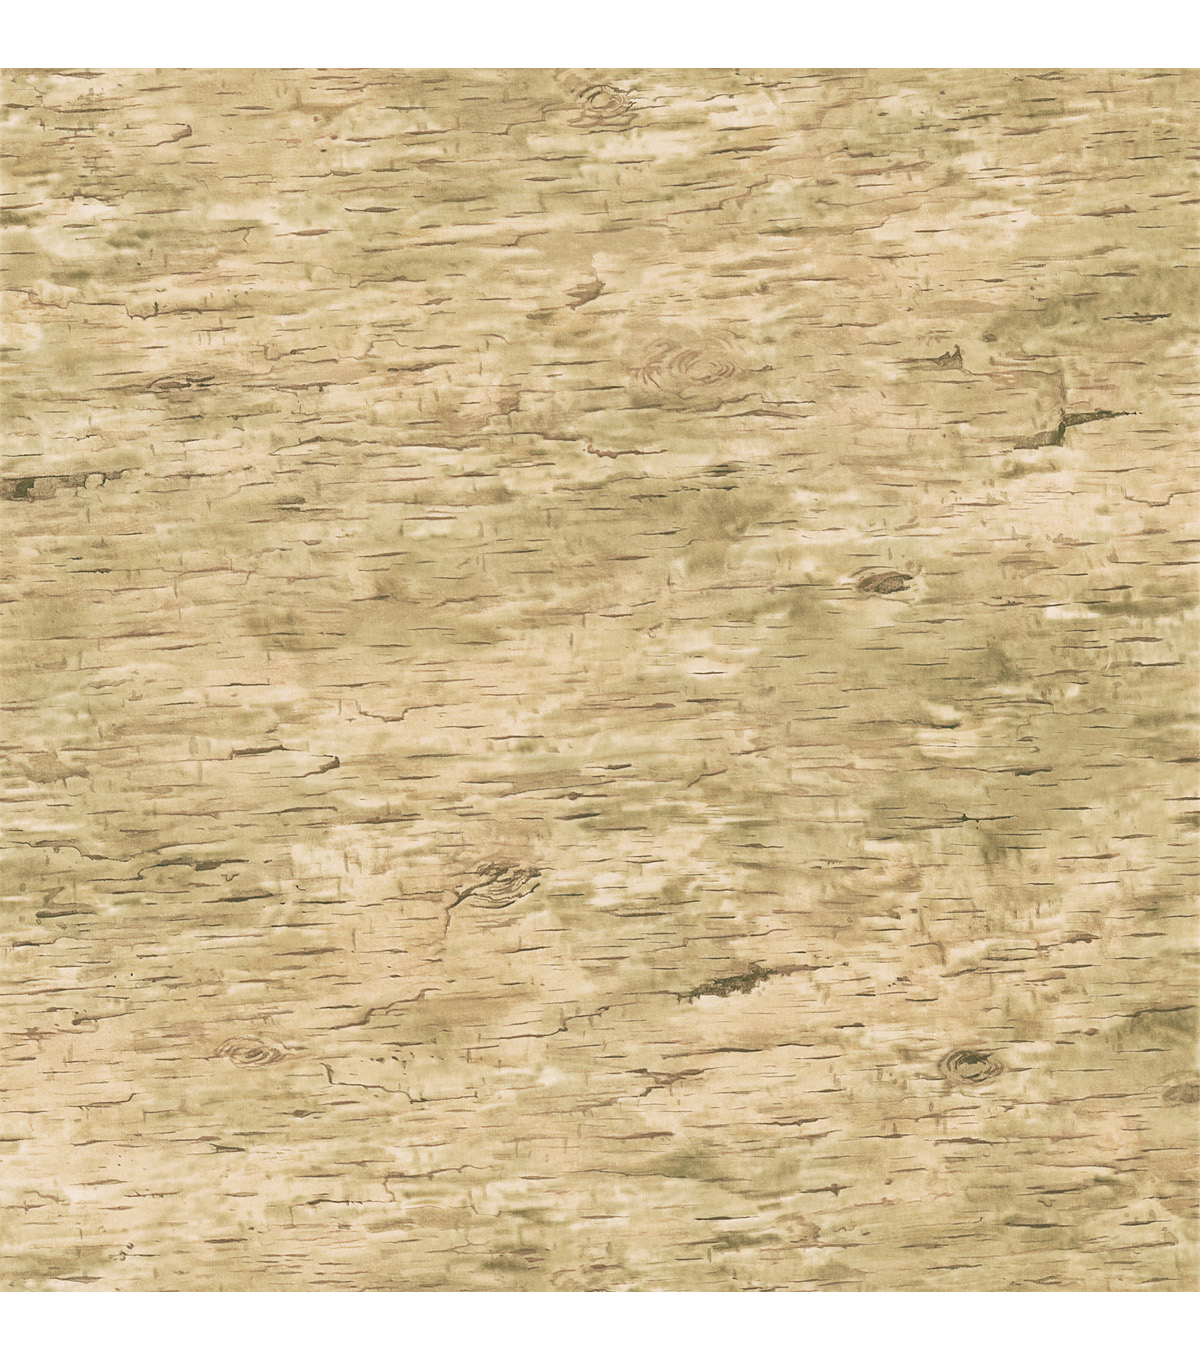 Birch Light Brown Bark Texture Wallpaper Sample